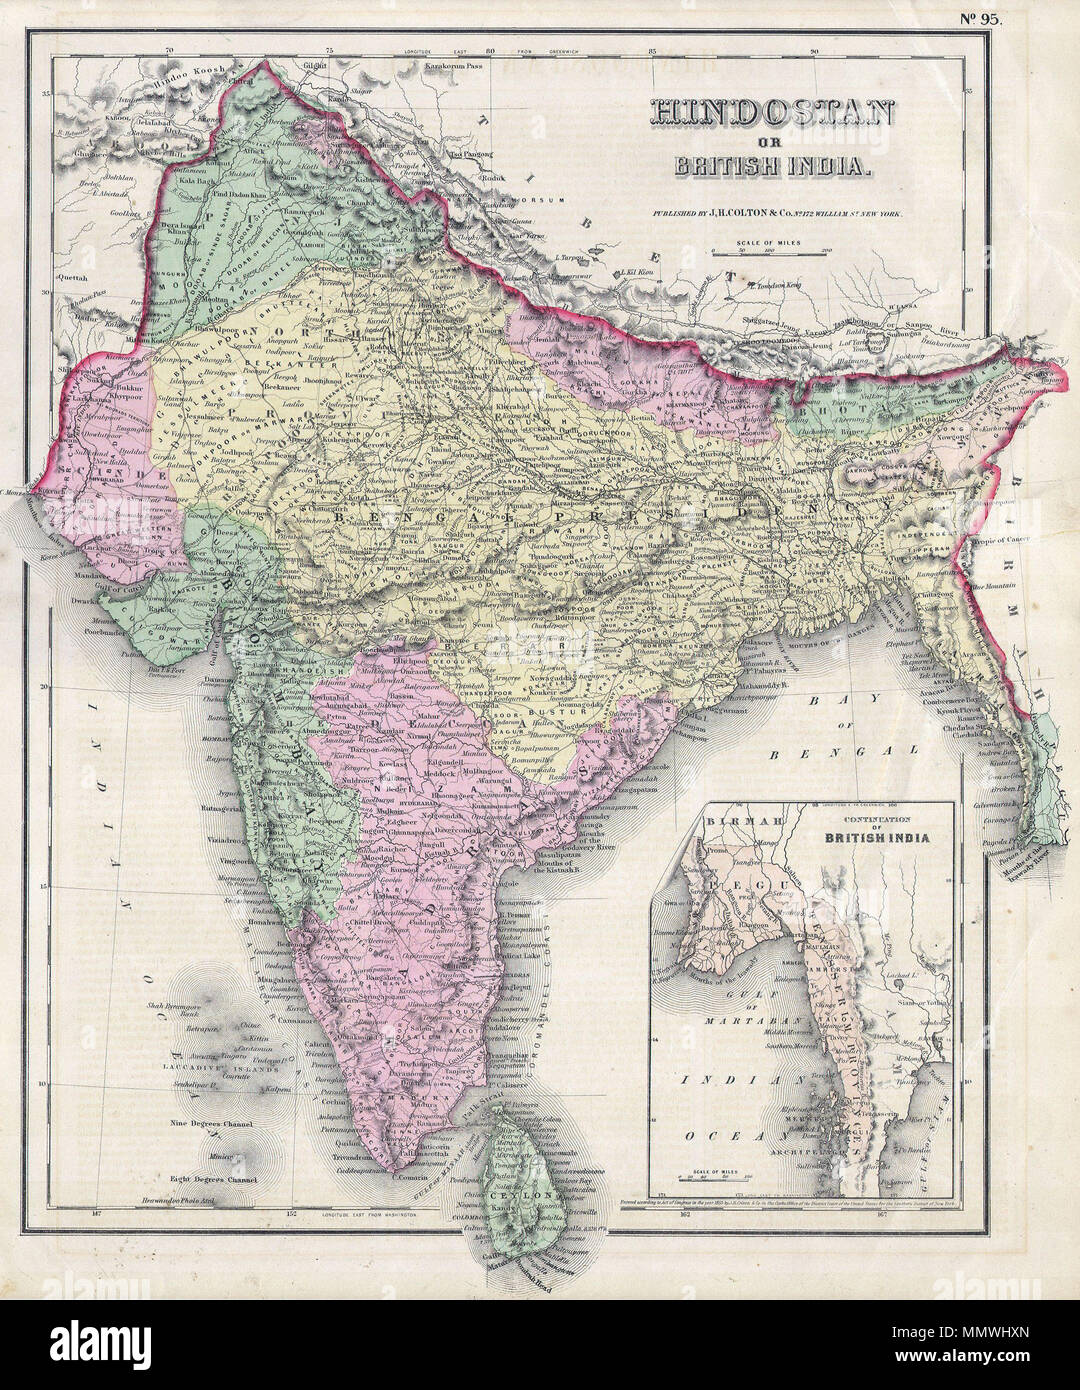 .  English: This hand colored map of India or Hindostan is a steel plate engraving, dating to 1855 by the well regarded mid 19th century American cartographer Colton. Map depicts most of what is today modern India and what was, when this map was made, British India. Also includes the province of Pegu or what is now Burma / Myanmar.  India or Hindostan.. 1855. 1855 Colton Map of India or Hindostan - Geographicus - India-cbl-1855 - Stock Image